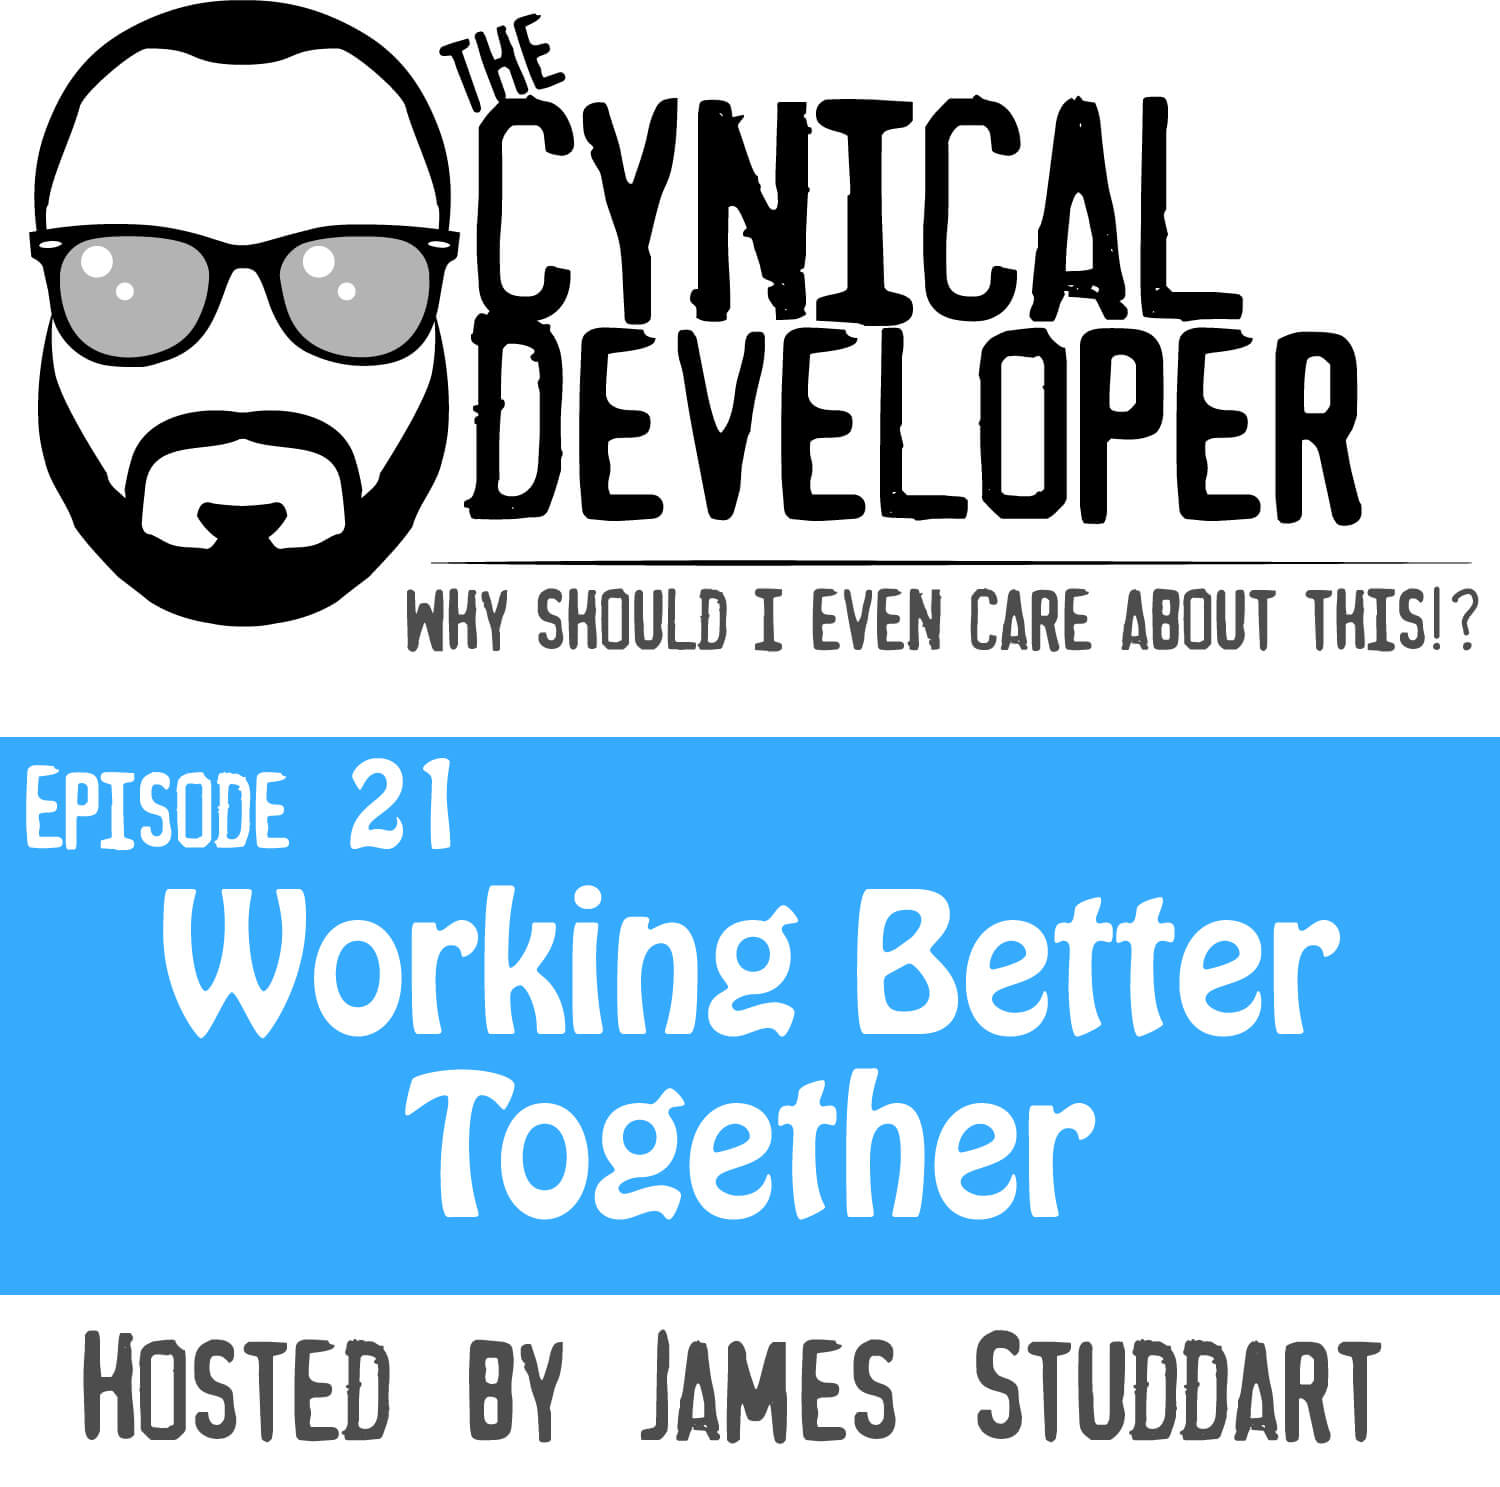 Episode 21 - Working better together